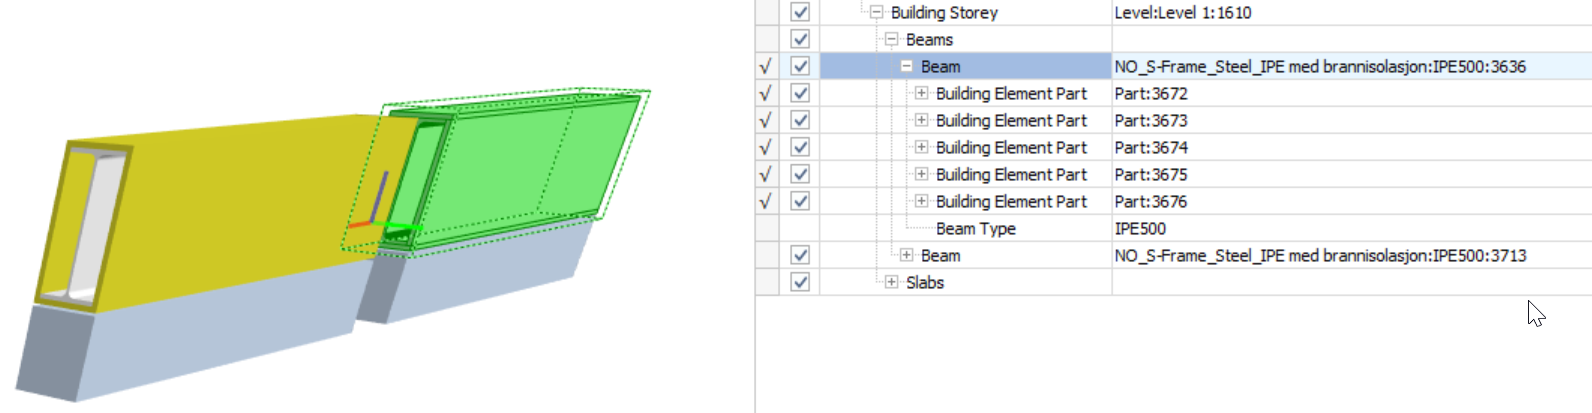 Parts: Wrong location for parts · Issue #86 · Autodesk/revit-ifc